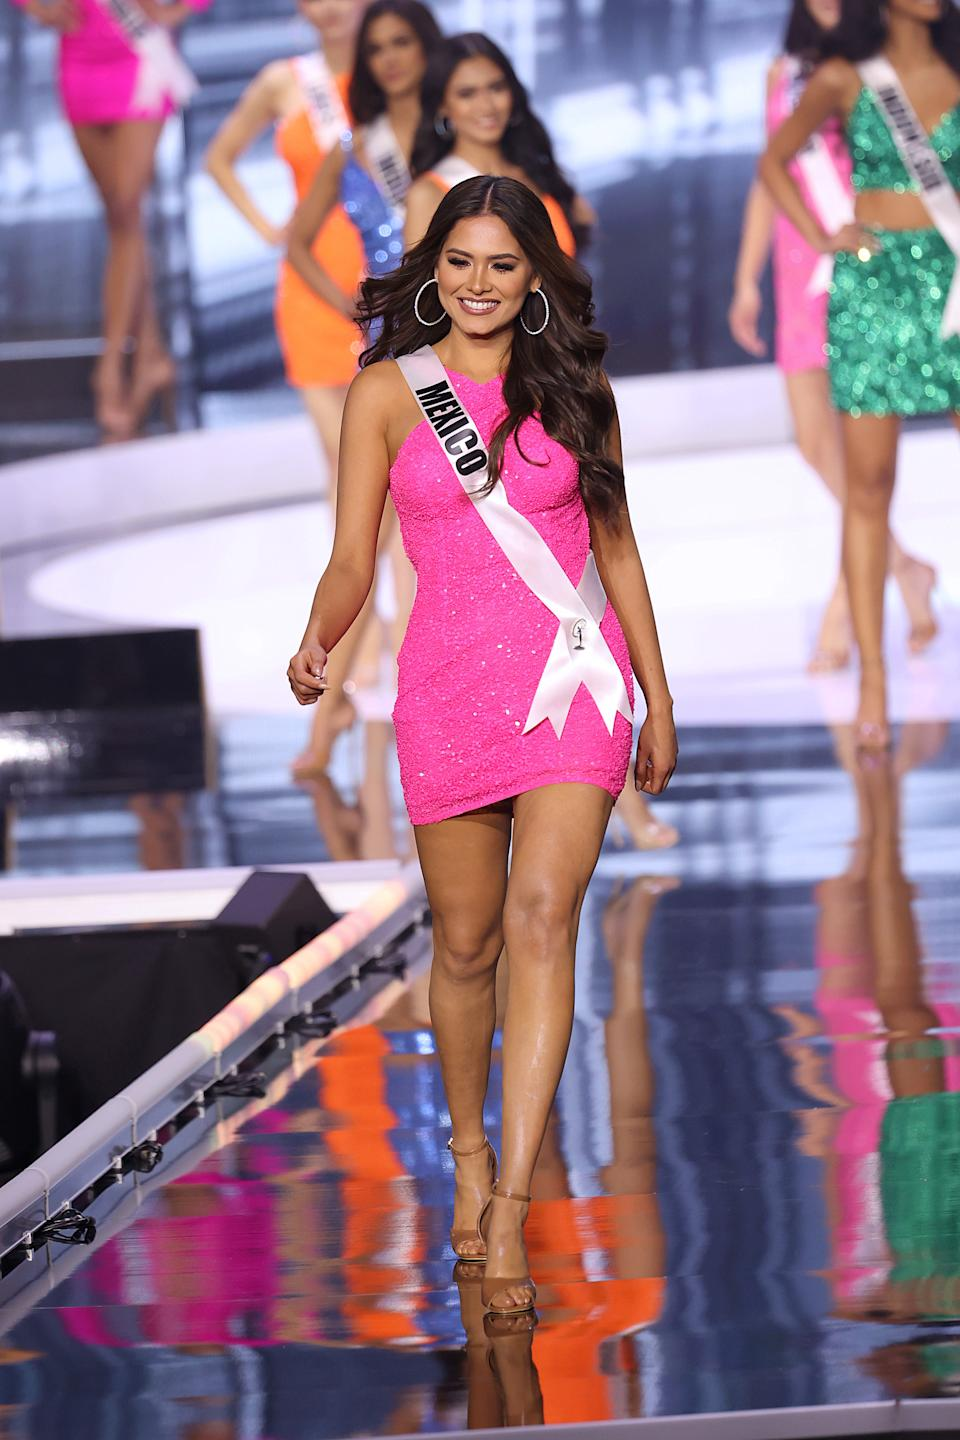 HOLLYWOOD, FLORIDA - MAY 16: Miss Universe Mexico Andrea Meza appears onstage at the Miss Universe 2021 Pageant at Seminole Hard Rock Hotel & Casino on May 16, 2021 in Hollywood, Florida. (Photo by Rodrigo Varela/Getty Images)